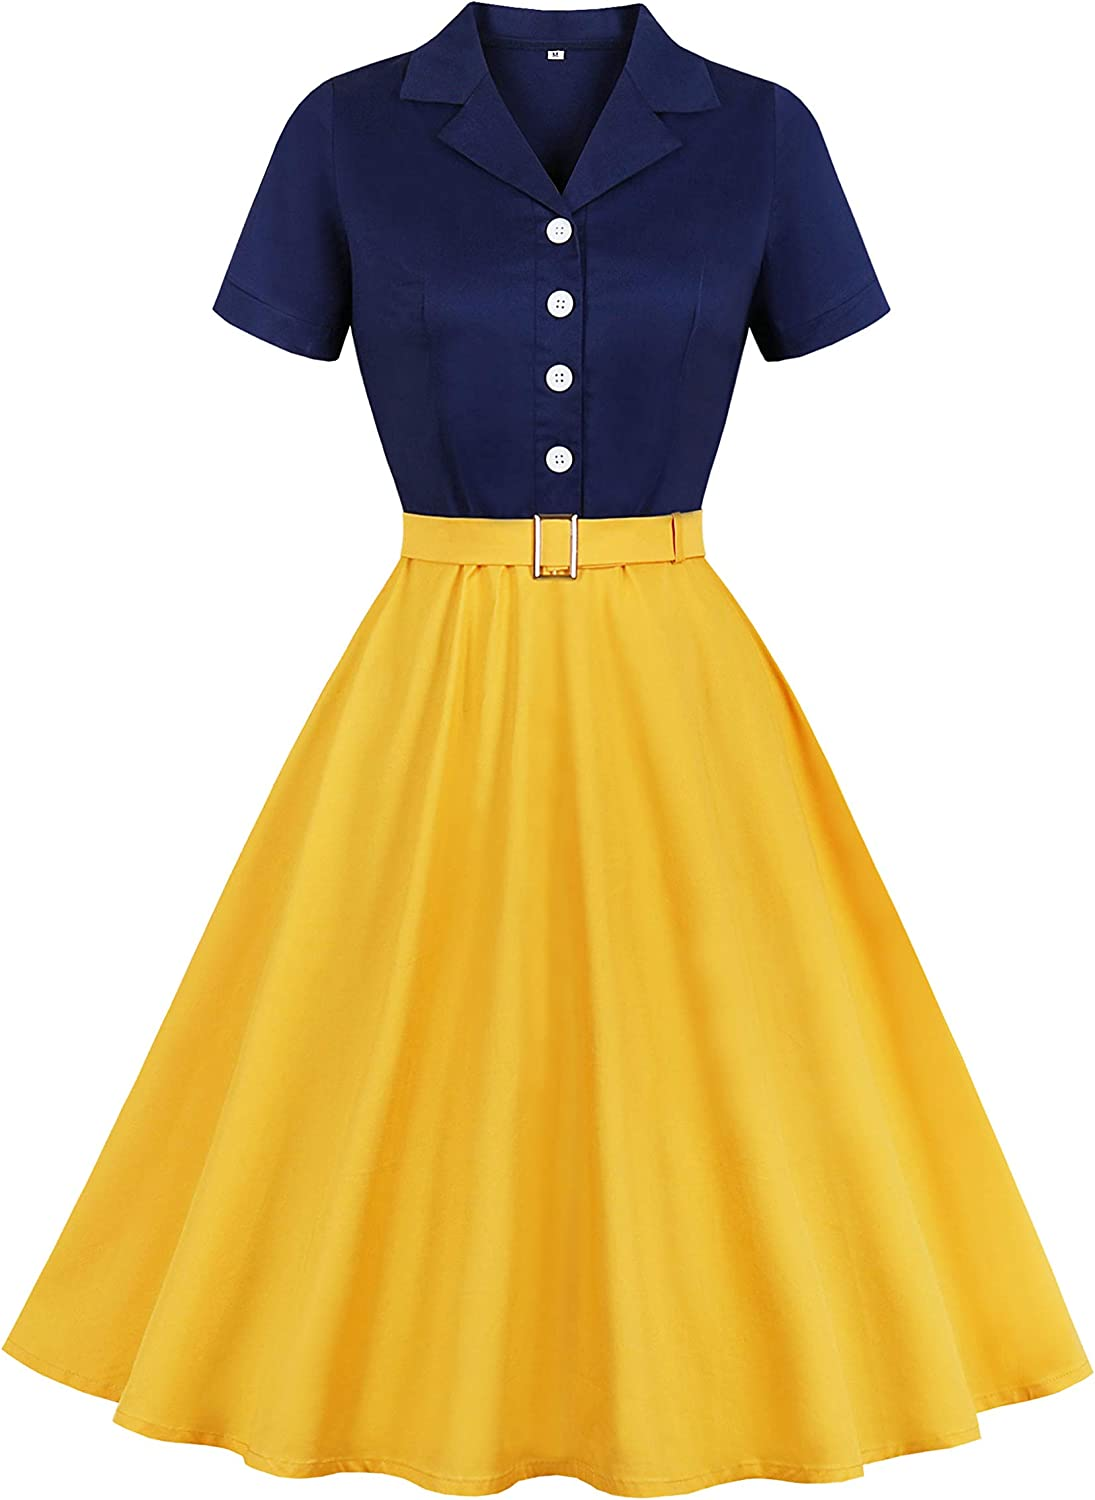 Wellwits Women's Sailor Navy Yellow Halloween Princess Vintage Shirt Dress